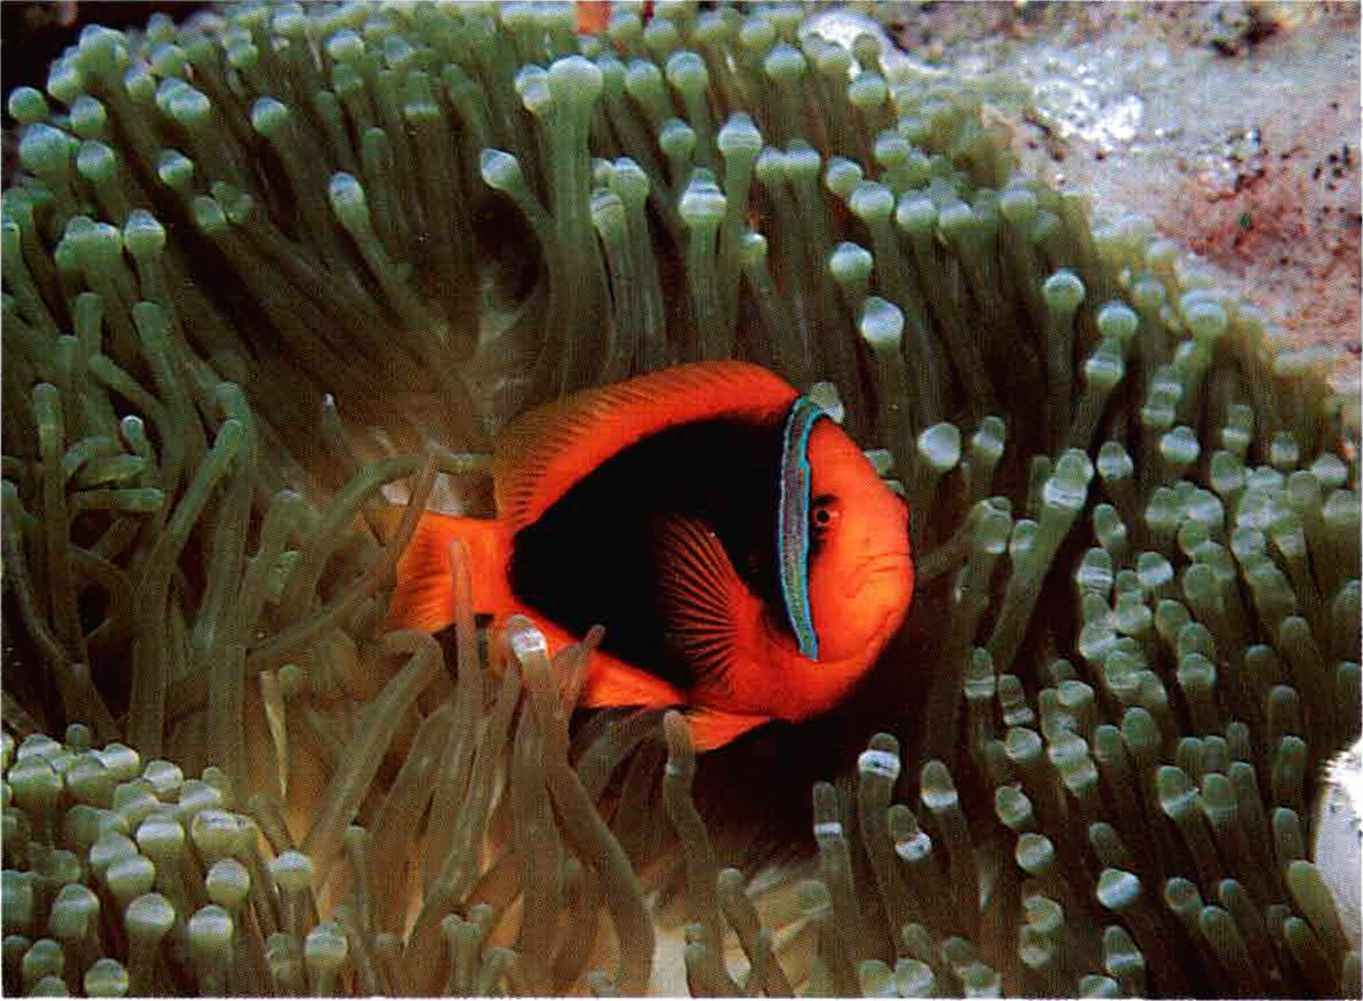 Tomato clownfish anemone - photo#5